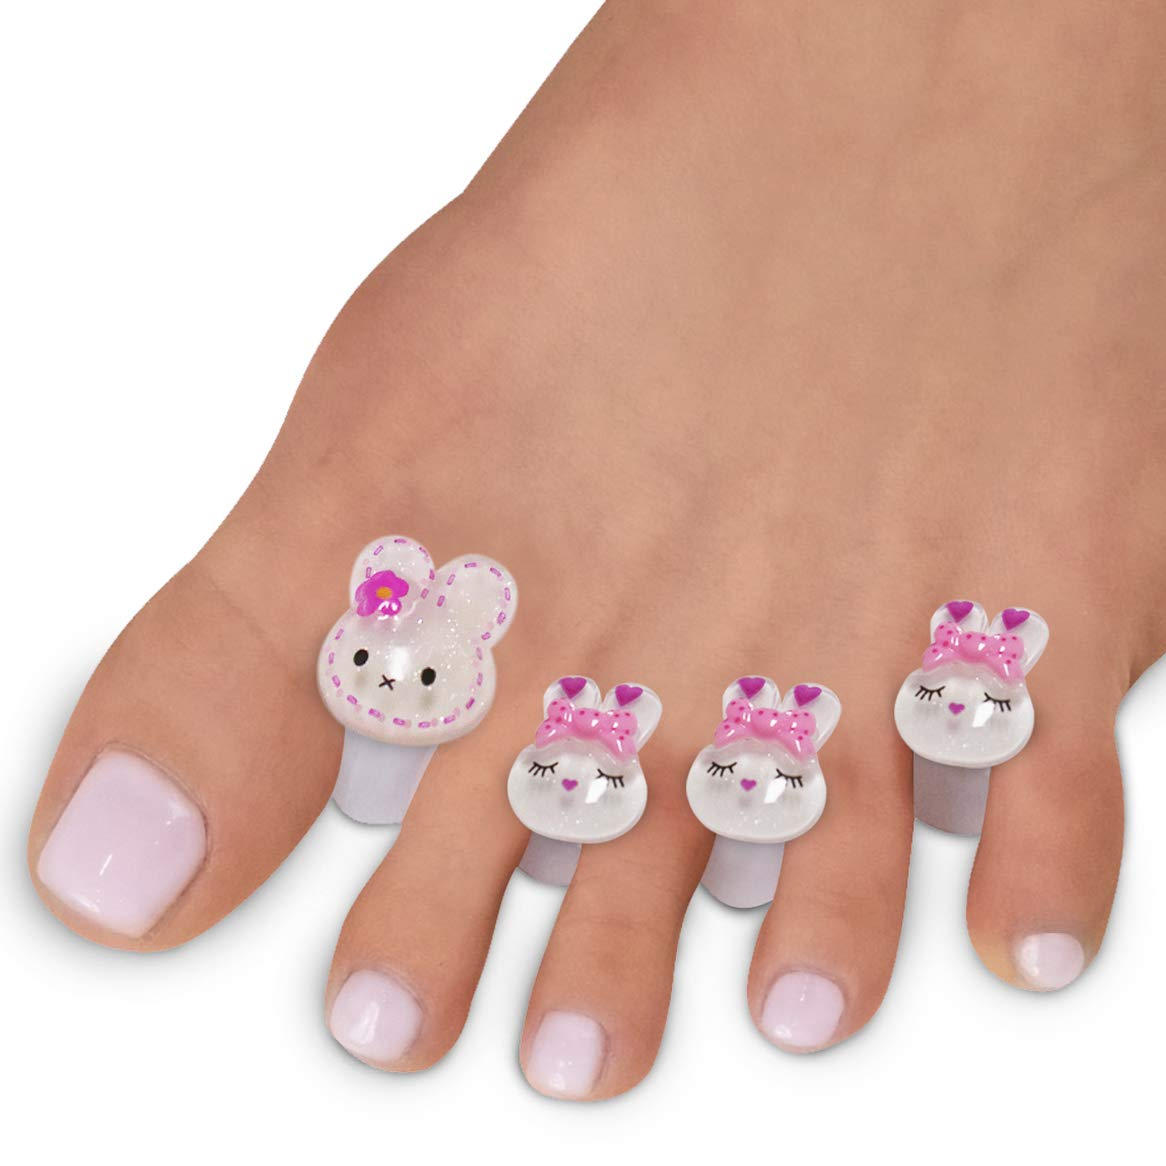 Toe Separators for Nail Polish Pedicure - 8 x Spacers, Stretchers, Spreaders, Polish Guards - Toe Spacers for Feet - (Rabbits)